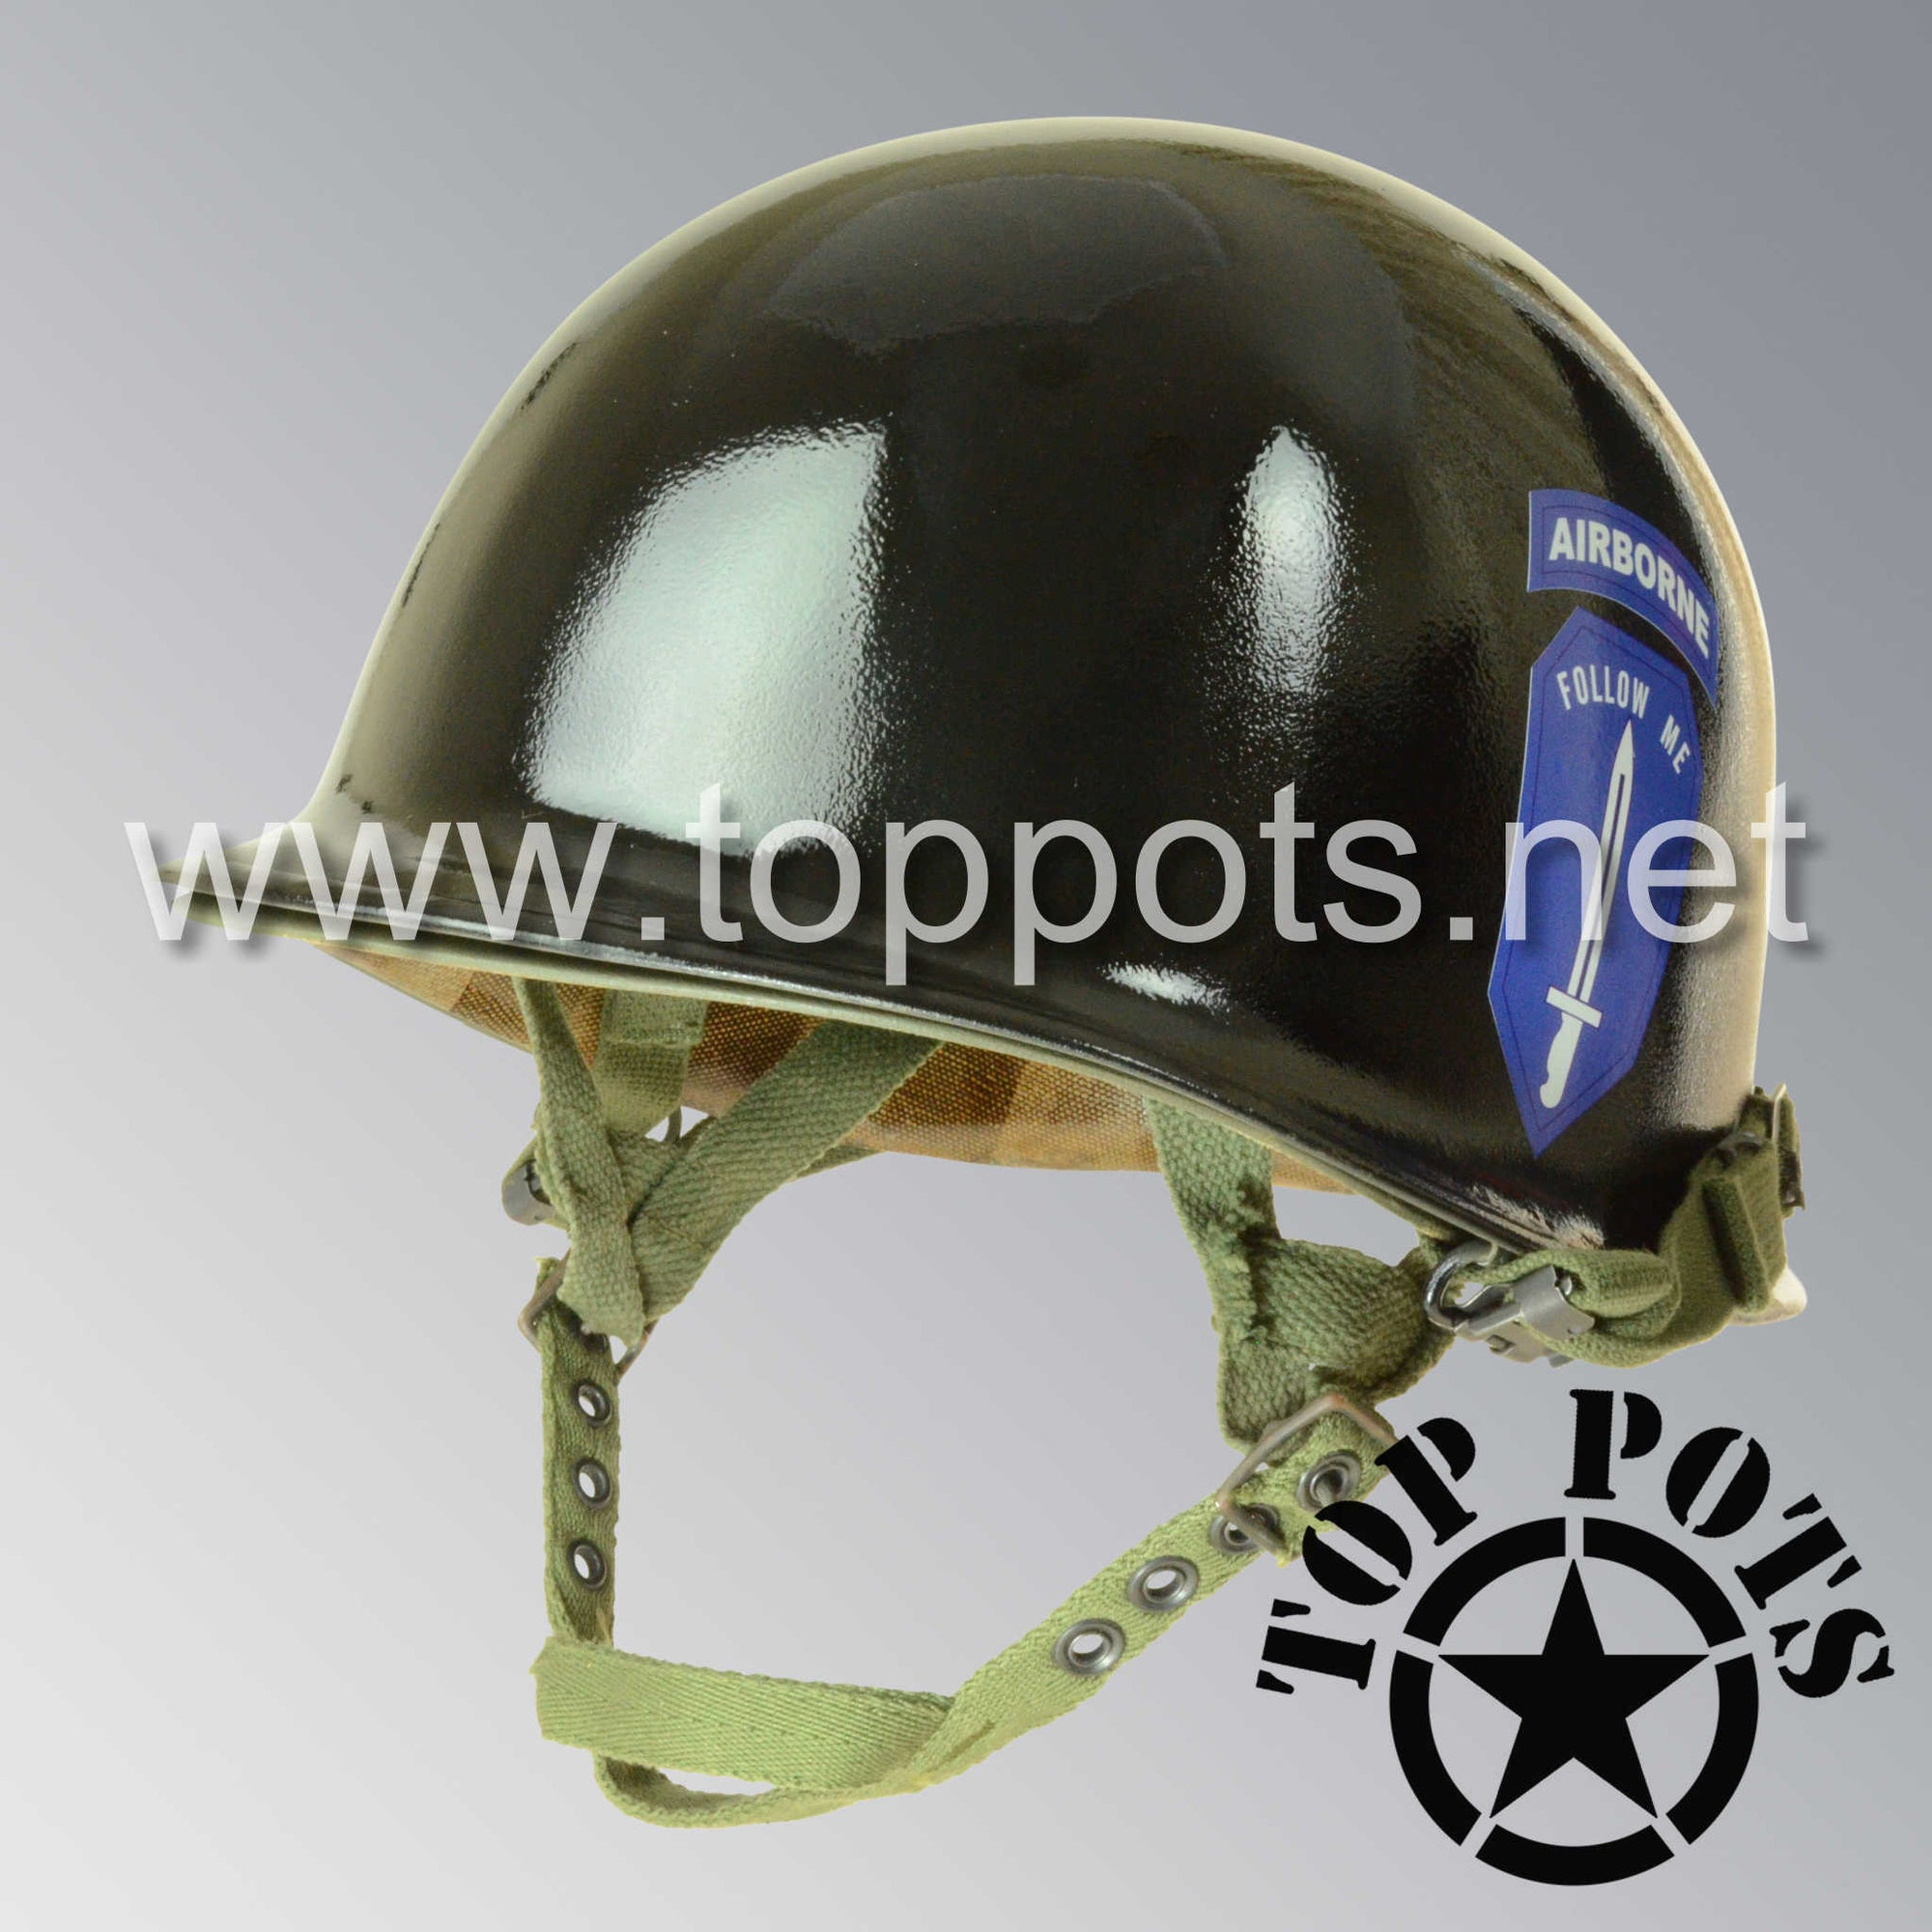 Image 1 of Vietnam War US Army Restored Original P55 M1C Paratrooper Airborne Helmet Swivel Bale Shell and Liner with Ranger Infantry School Emblem